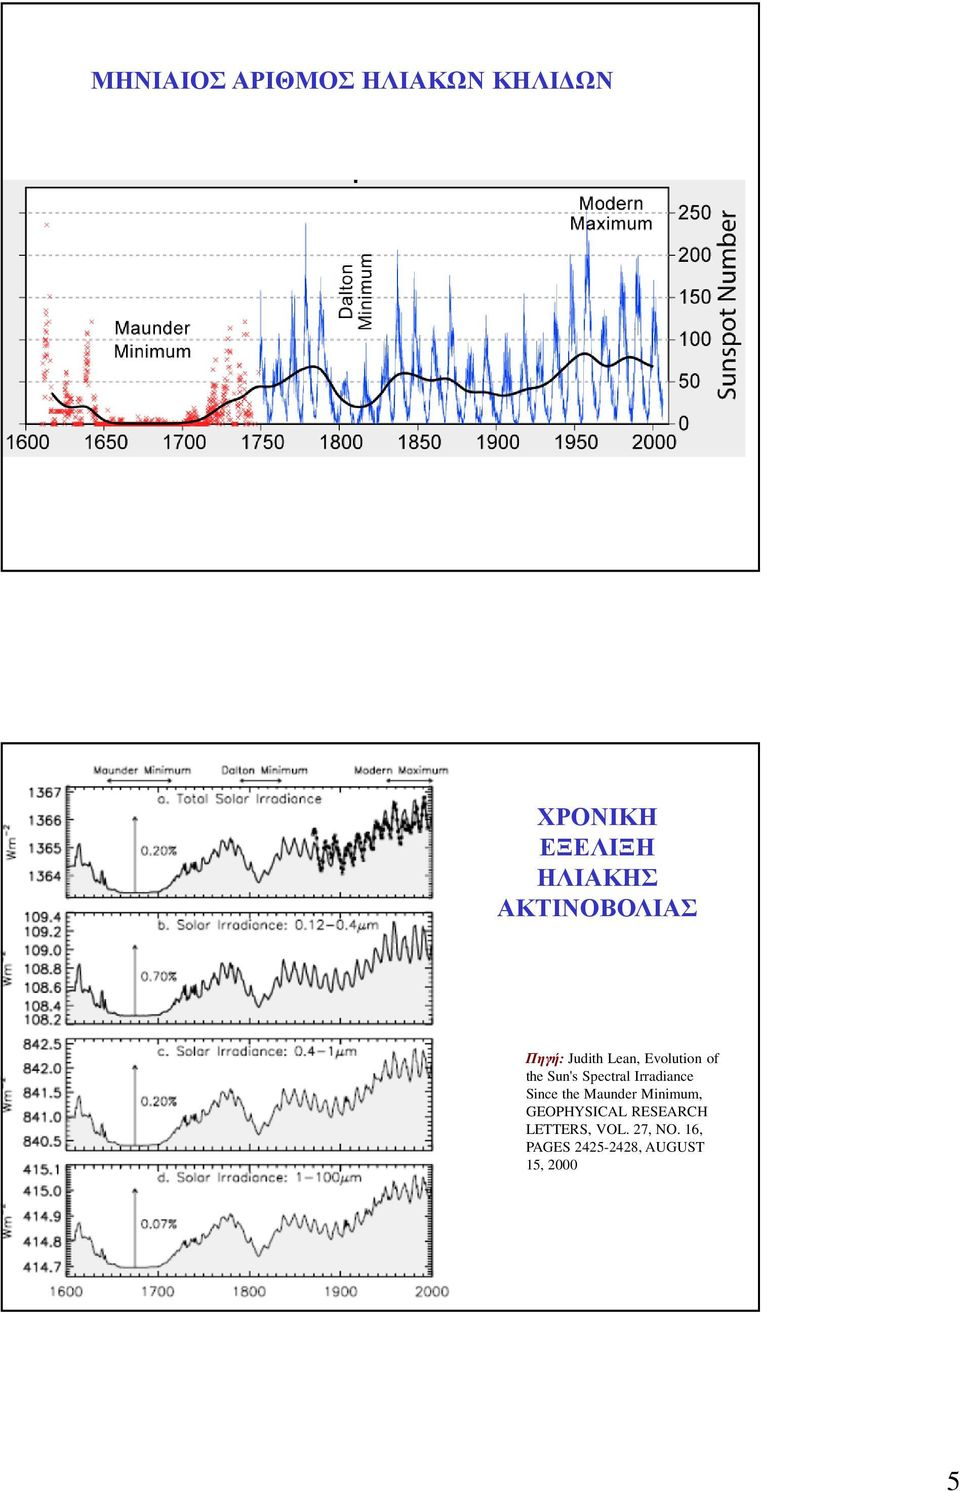 Spectral Irradiance Since the Maunder Minimum, GEOPHYSICAL